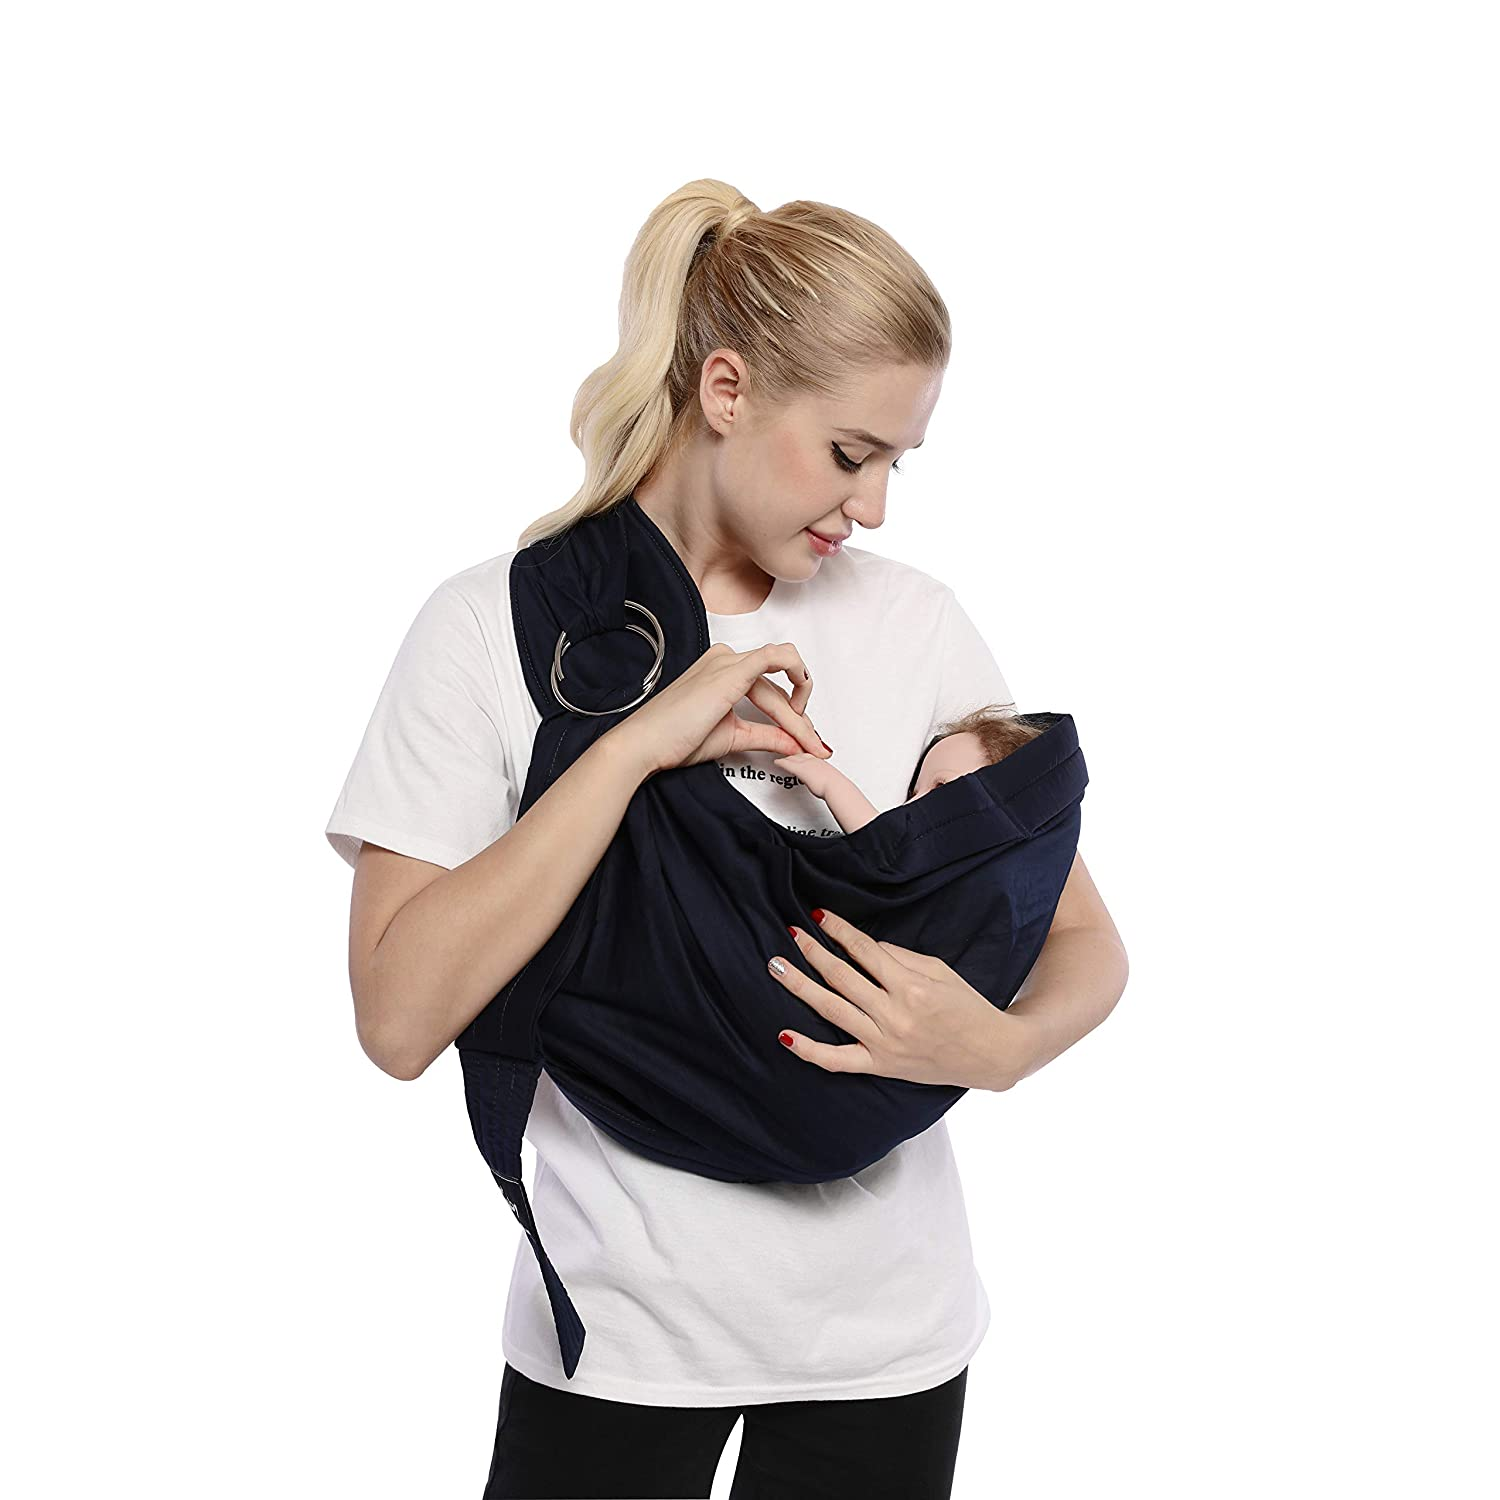 3b3b668ac95 Kangaroobaby Baby Sling Wrap Carrier One Size Fits All Adjustable for  Newborn to 33 Lbs Blue Color  Amazon.co.uk  Baby